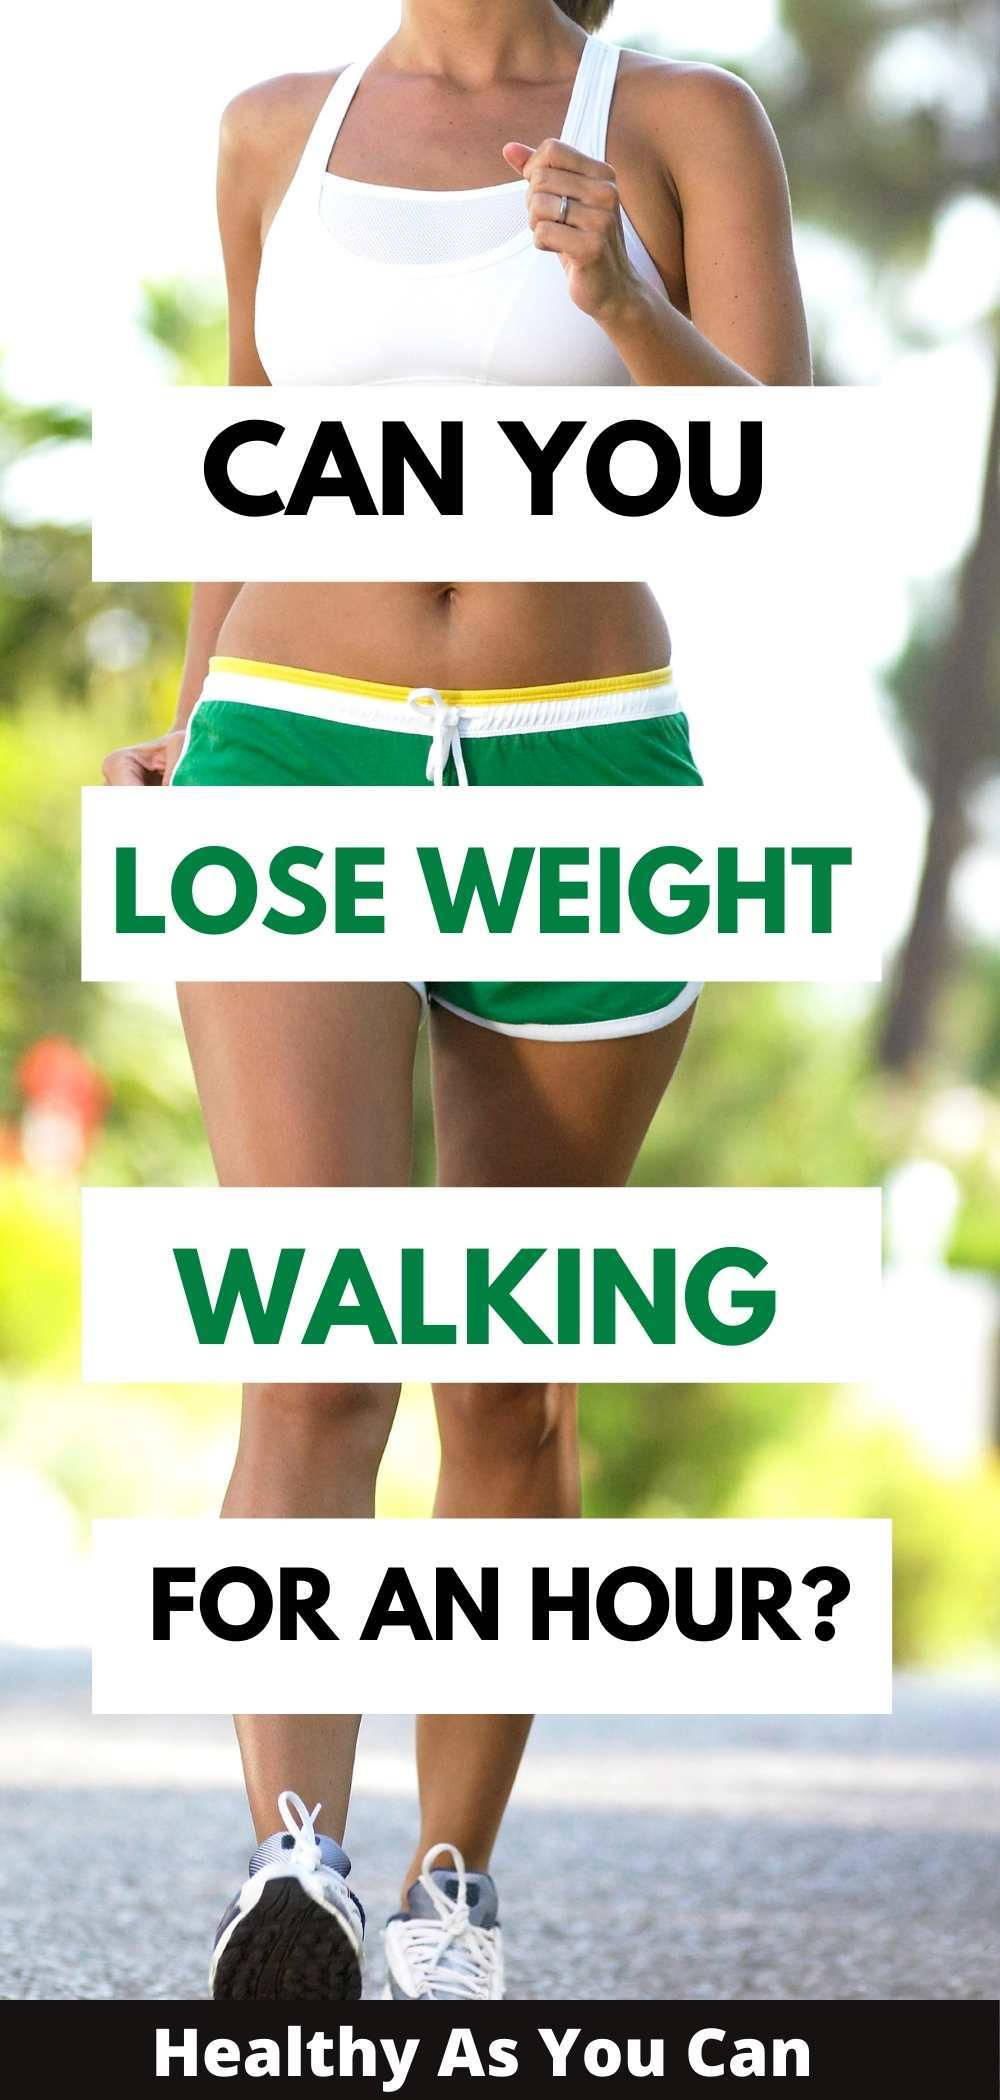 can yo lose weight by walkiing